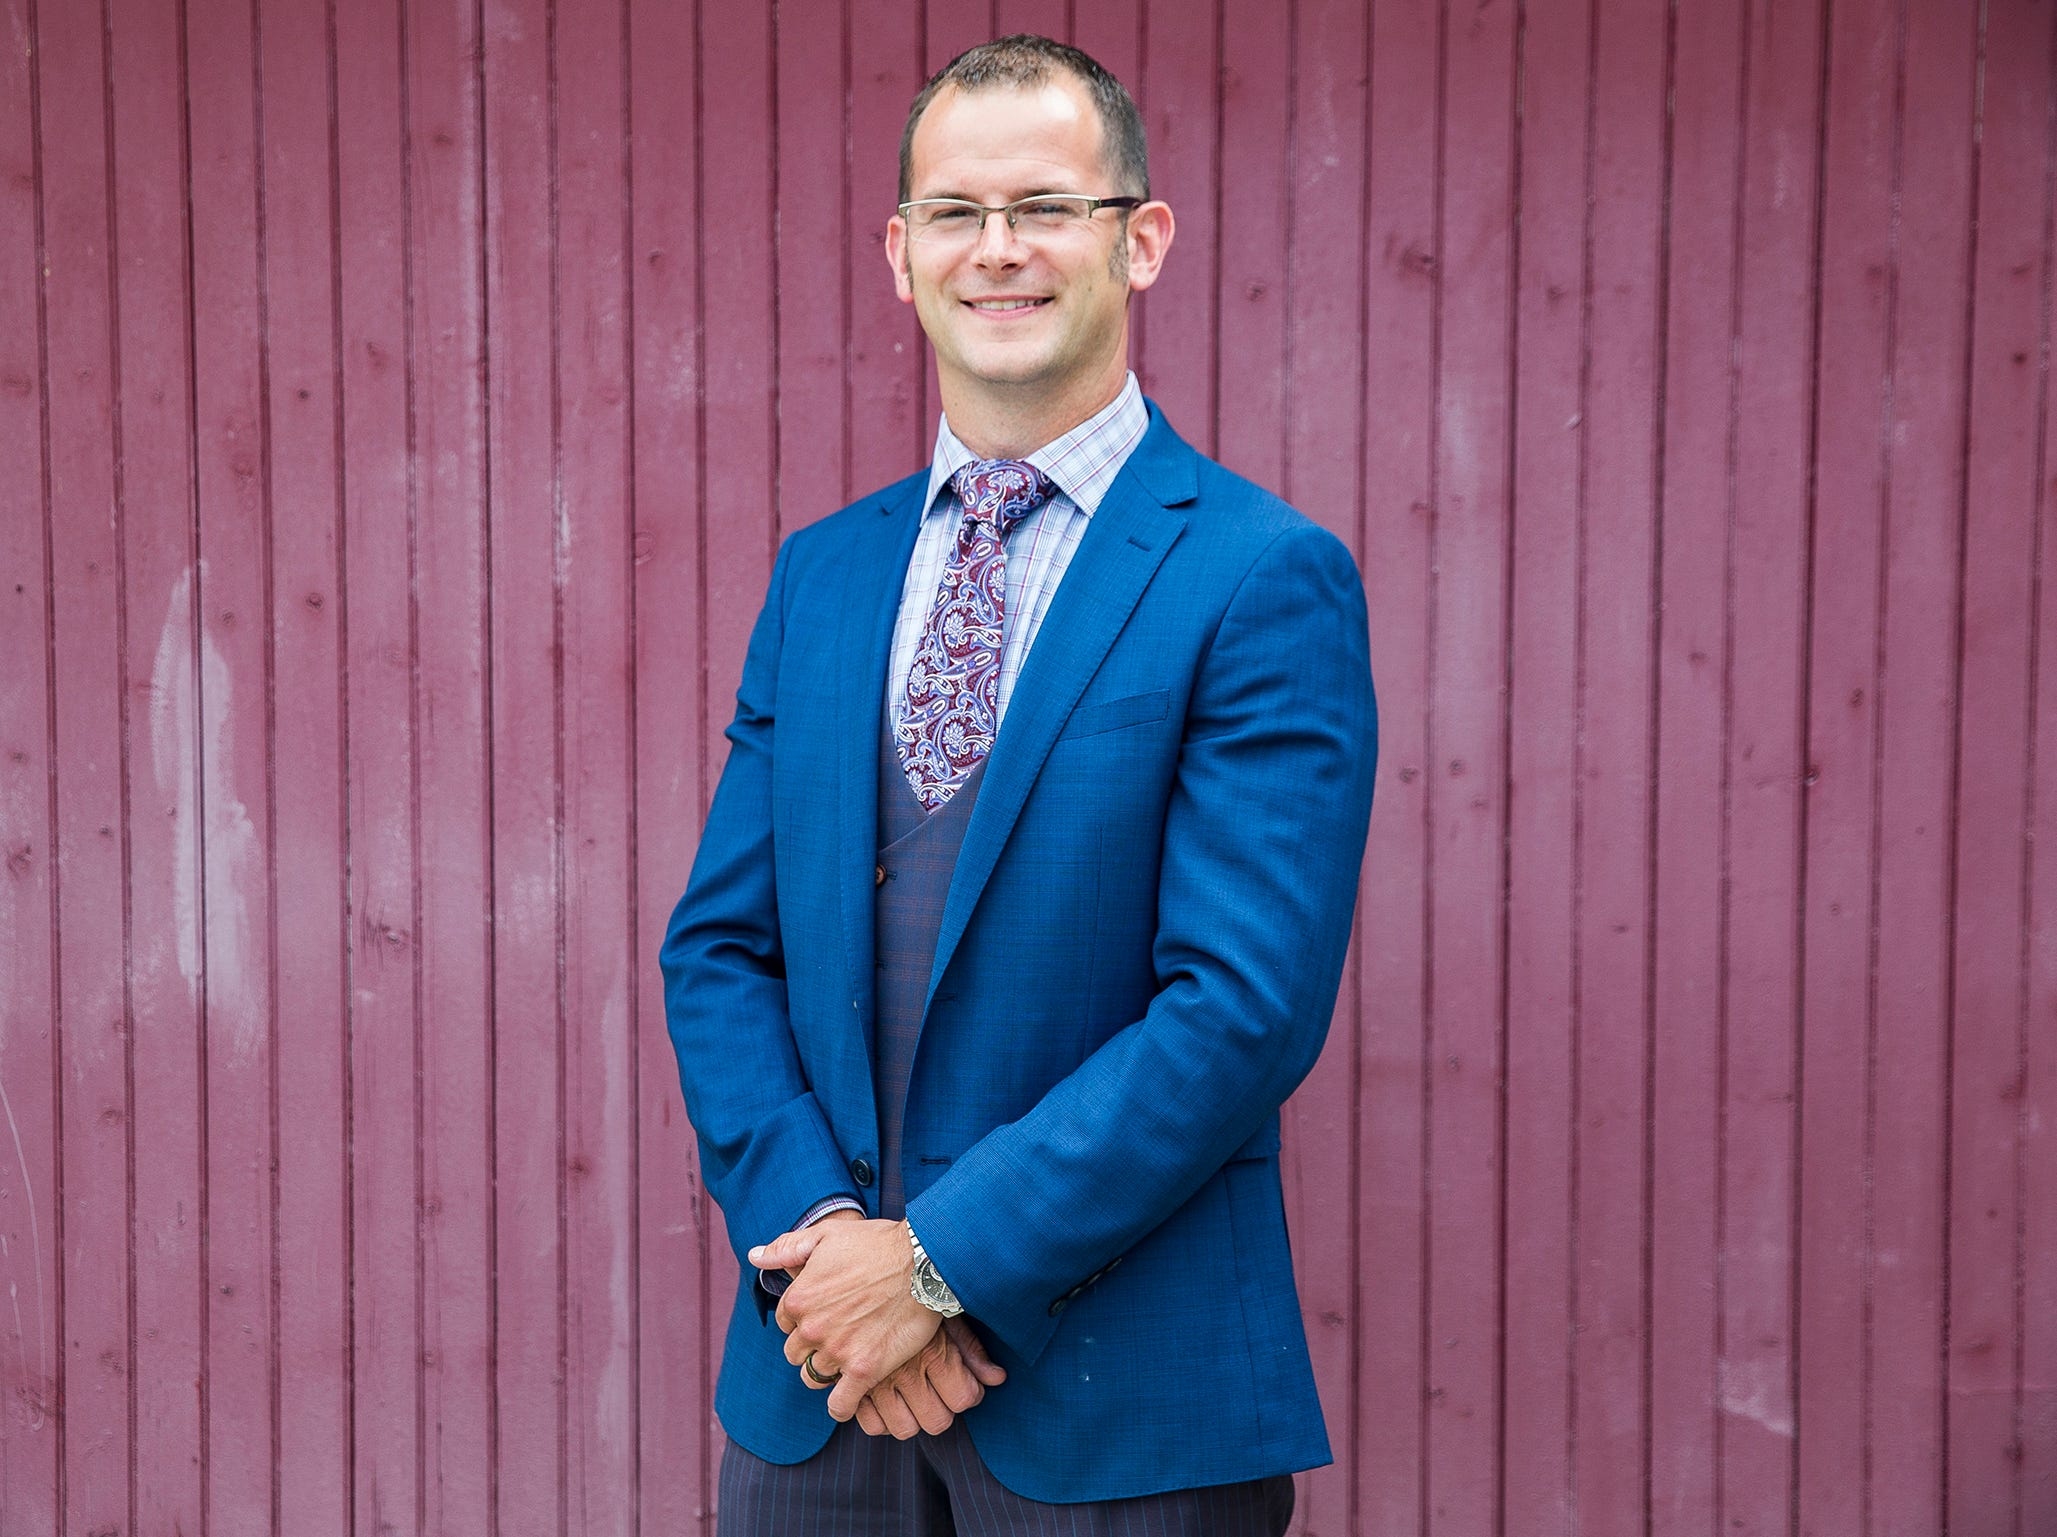 """Ryan Ballard: Joining family business has been full of """"thank yous'"""